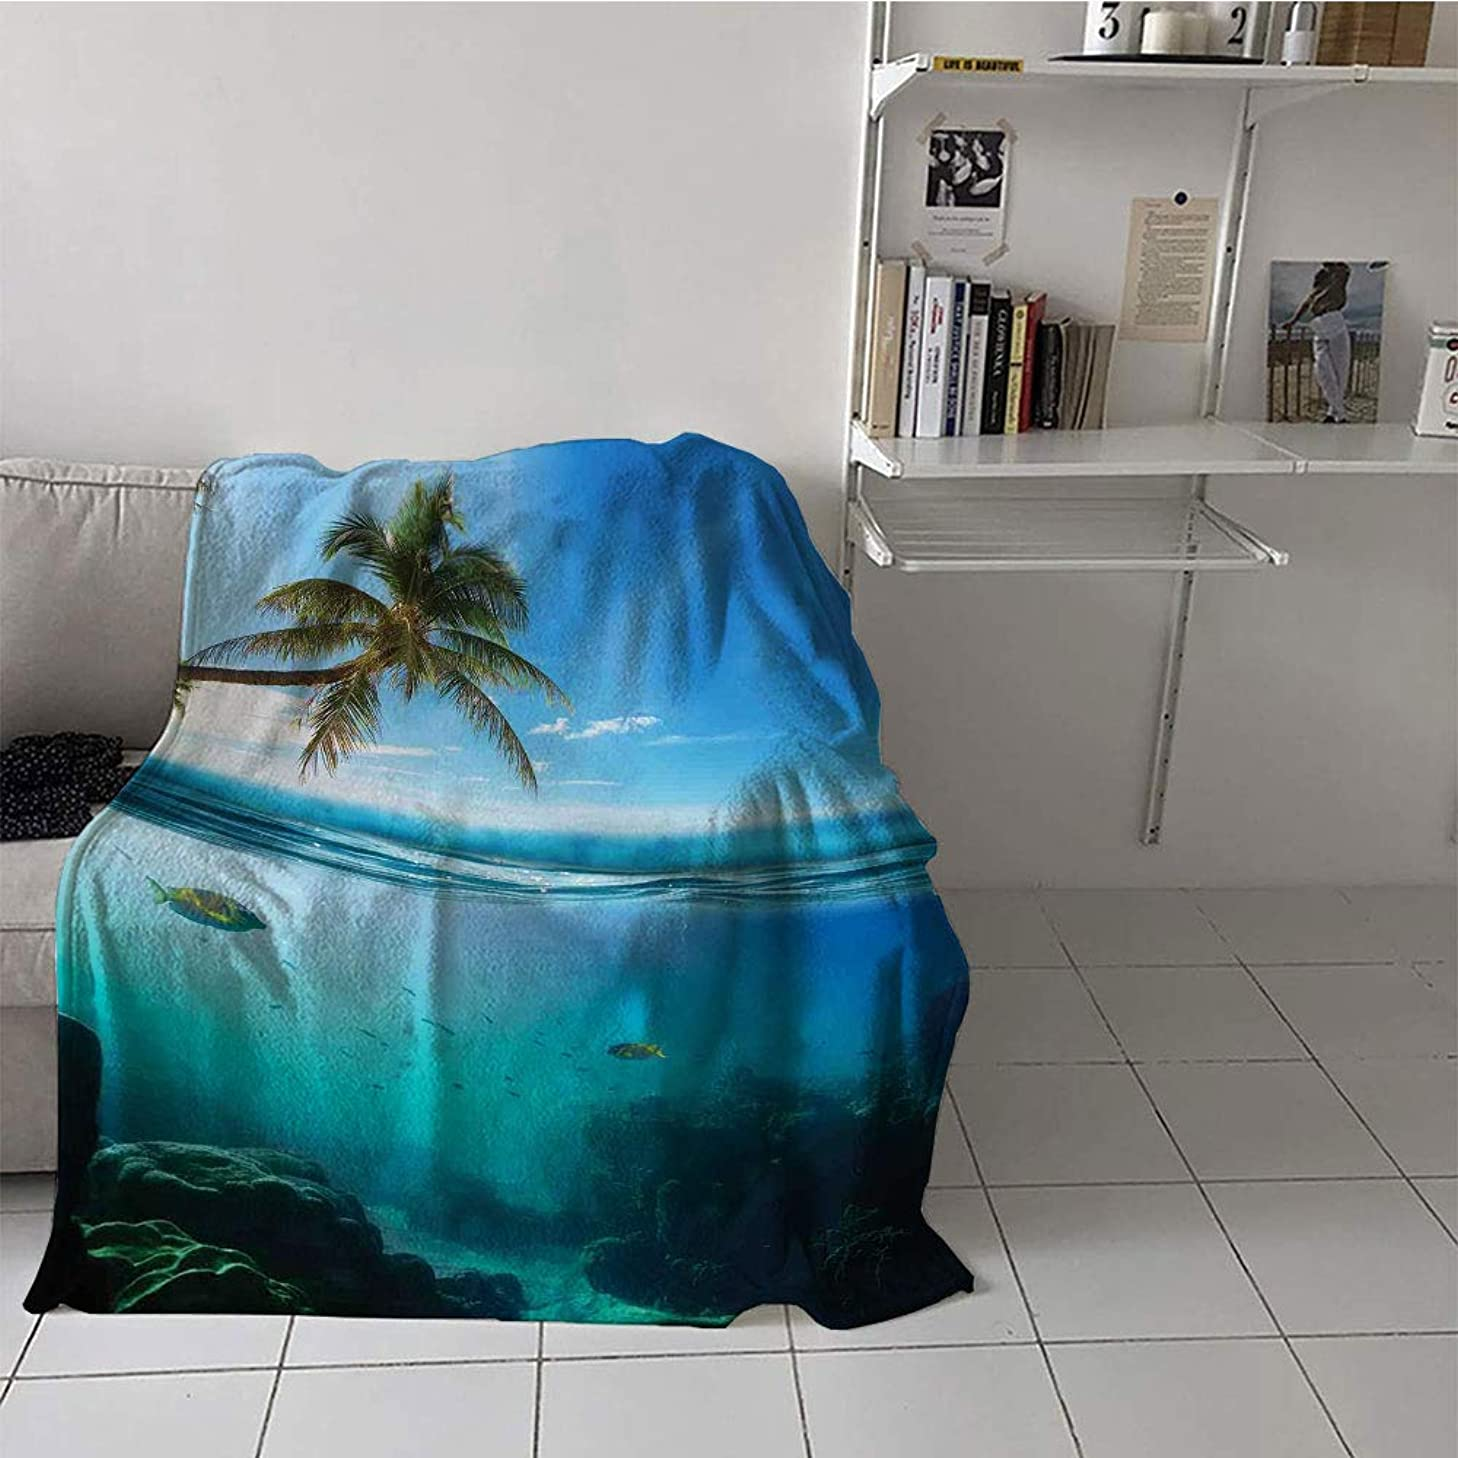 Khaki home Children's Blanket Lightweight Warm All Season Blanket for (35 by 60 Inch,Ocean,Tropical Underwater Shot with Surface Coconut Tree and Sky Aqua Water Theme Paradise Image,Turquoise